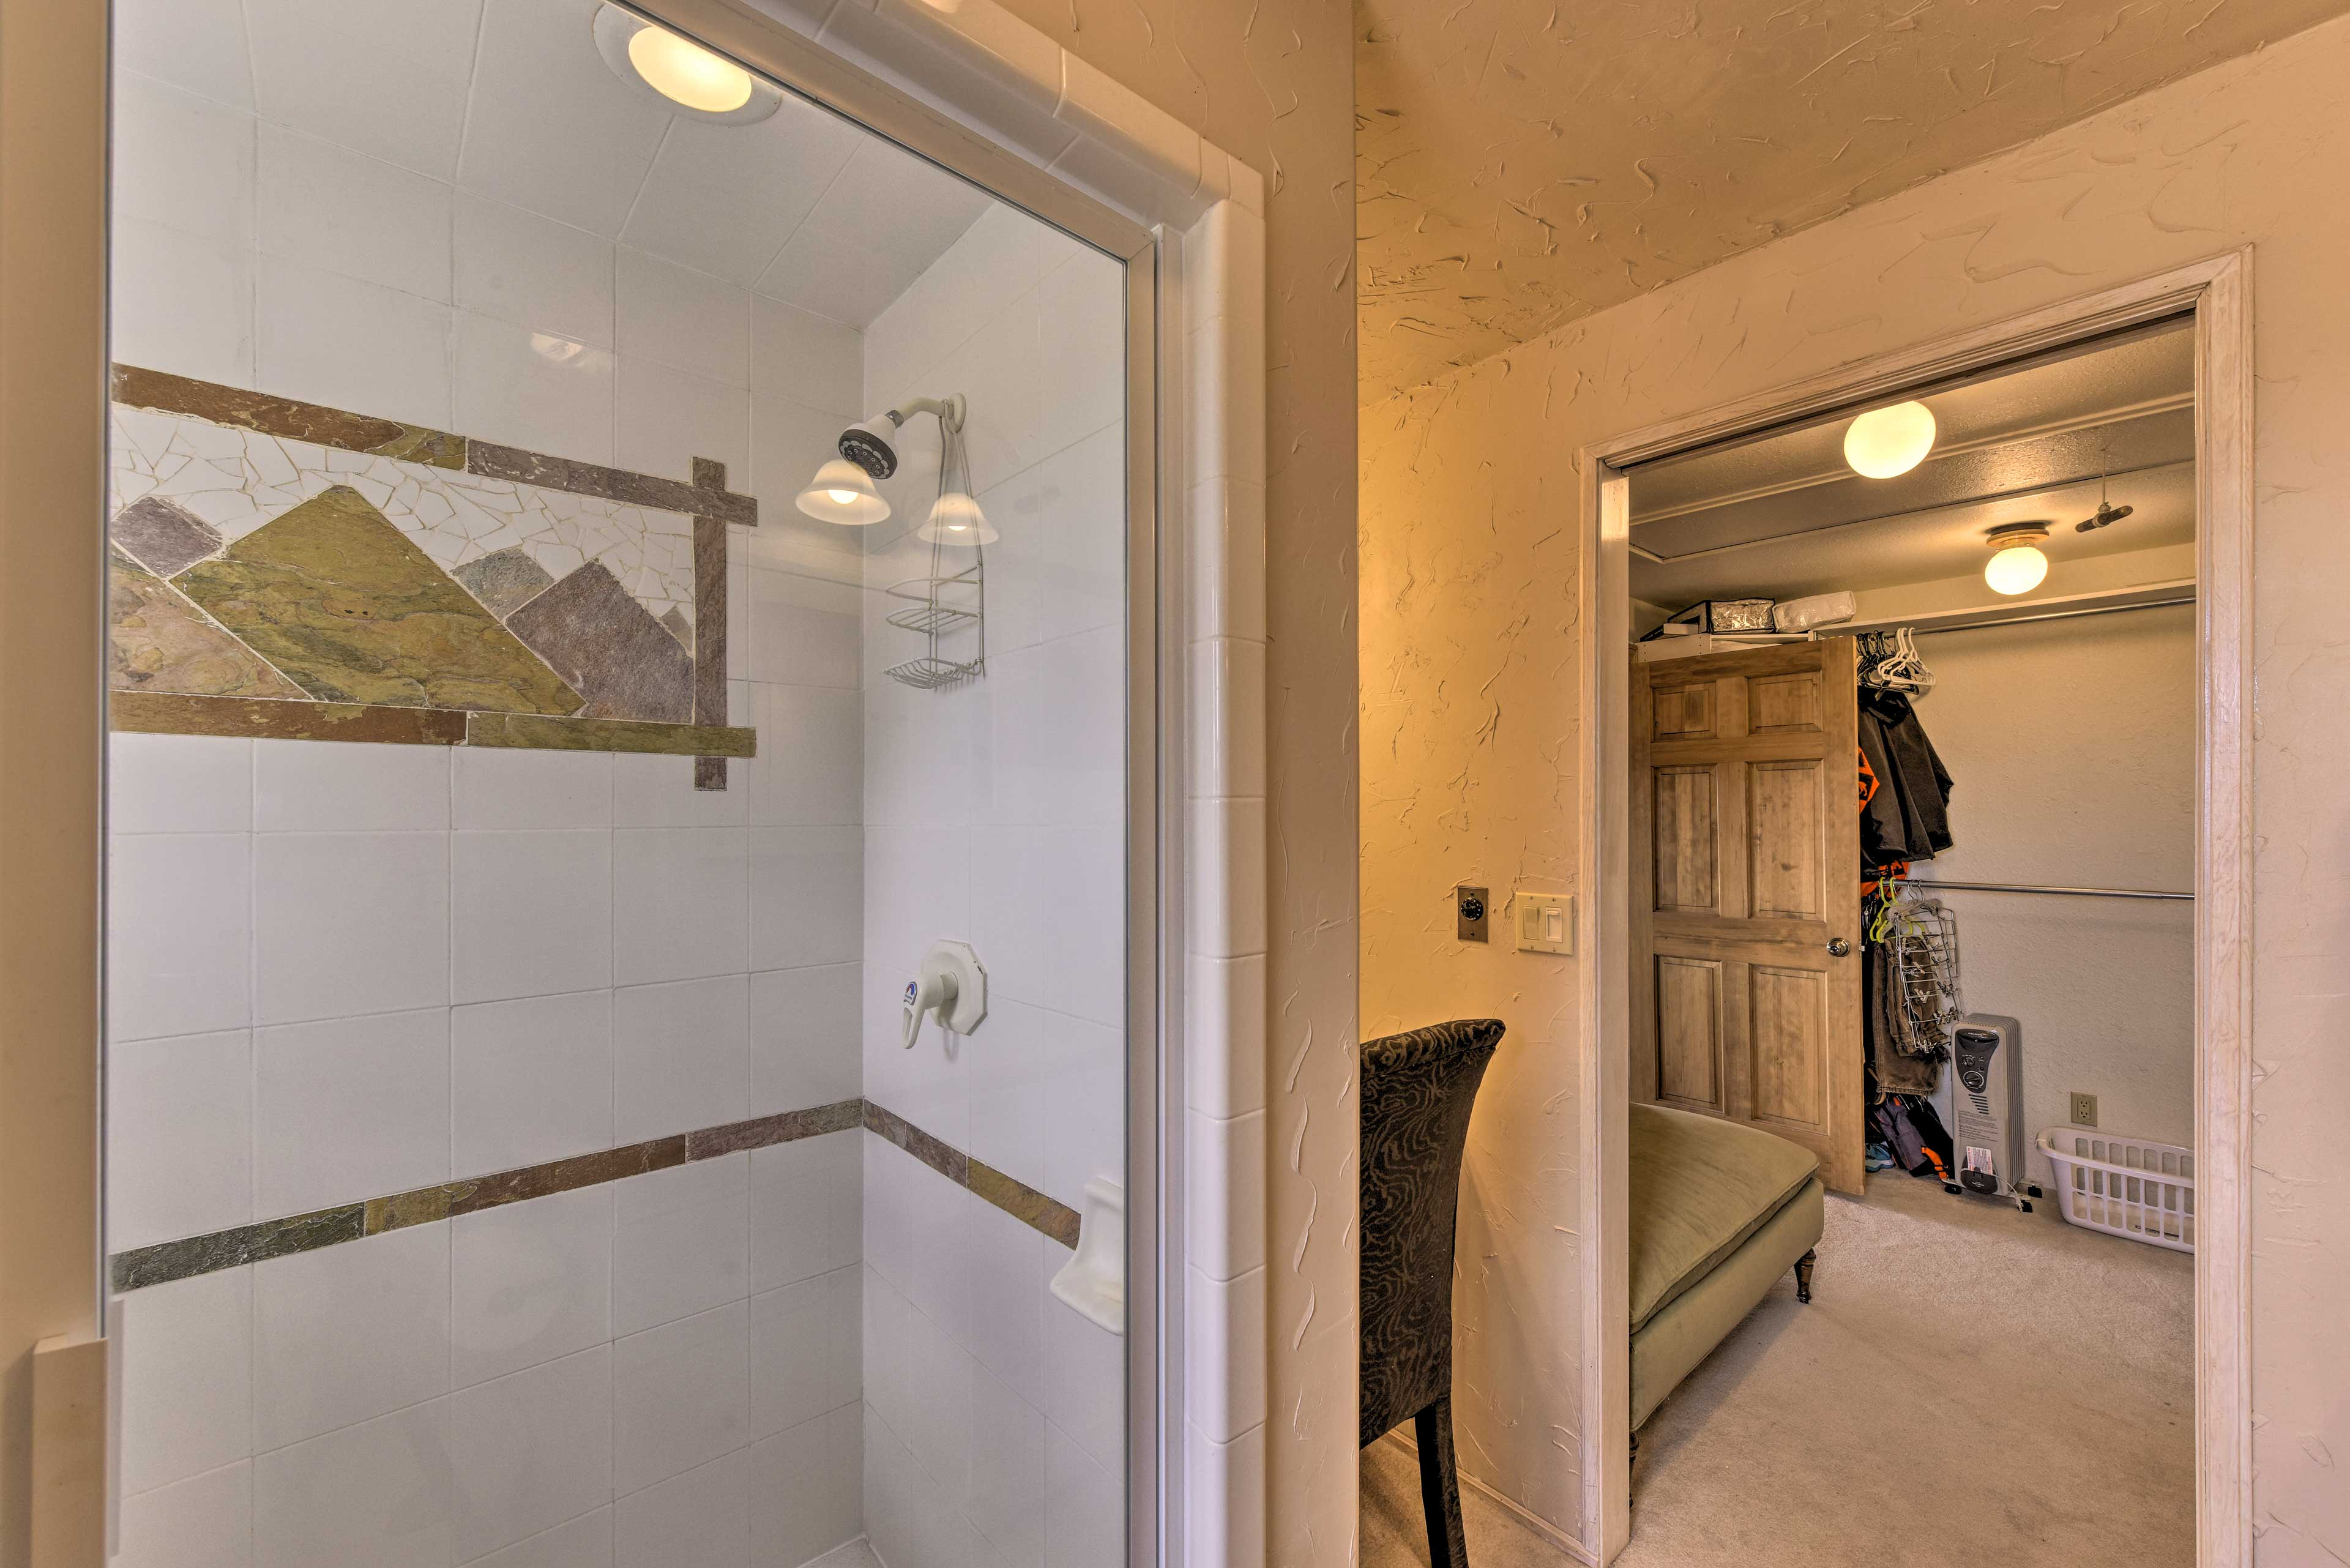 Take a refreshing shower after a day of fishing along the Arkansas River.